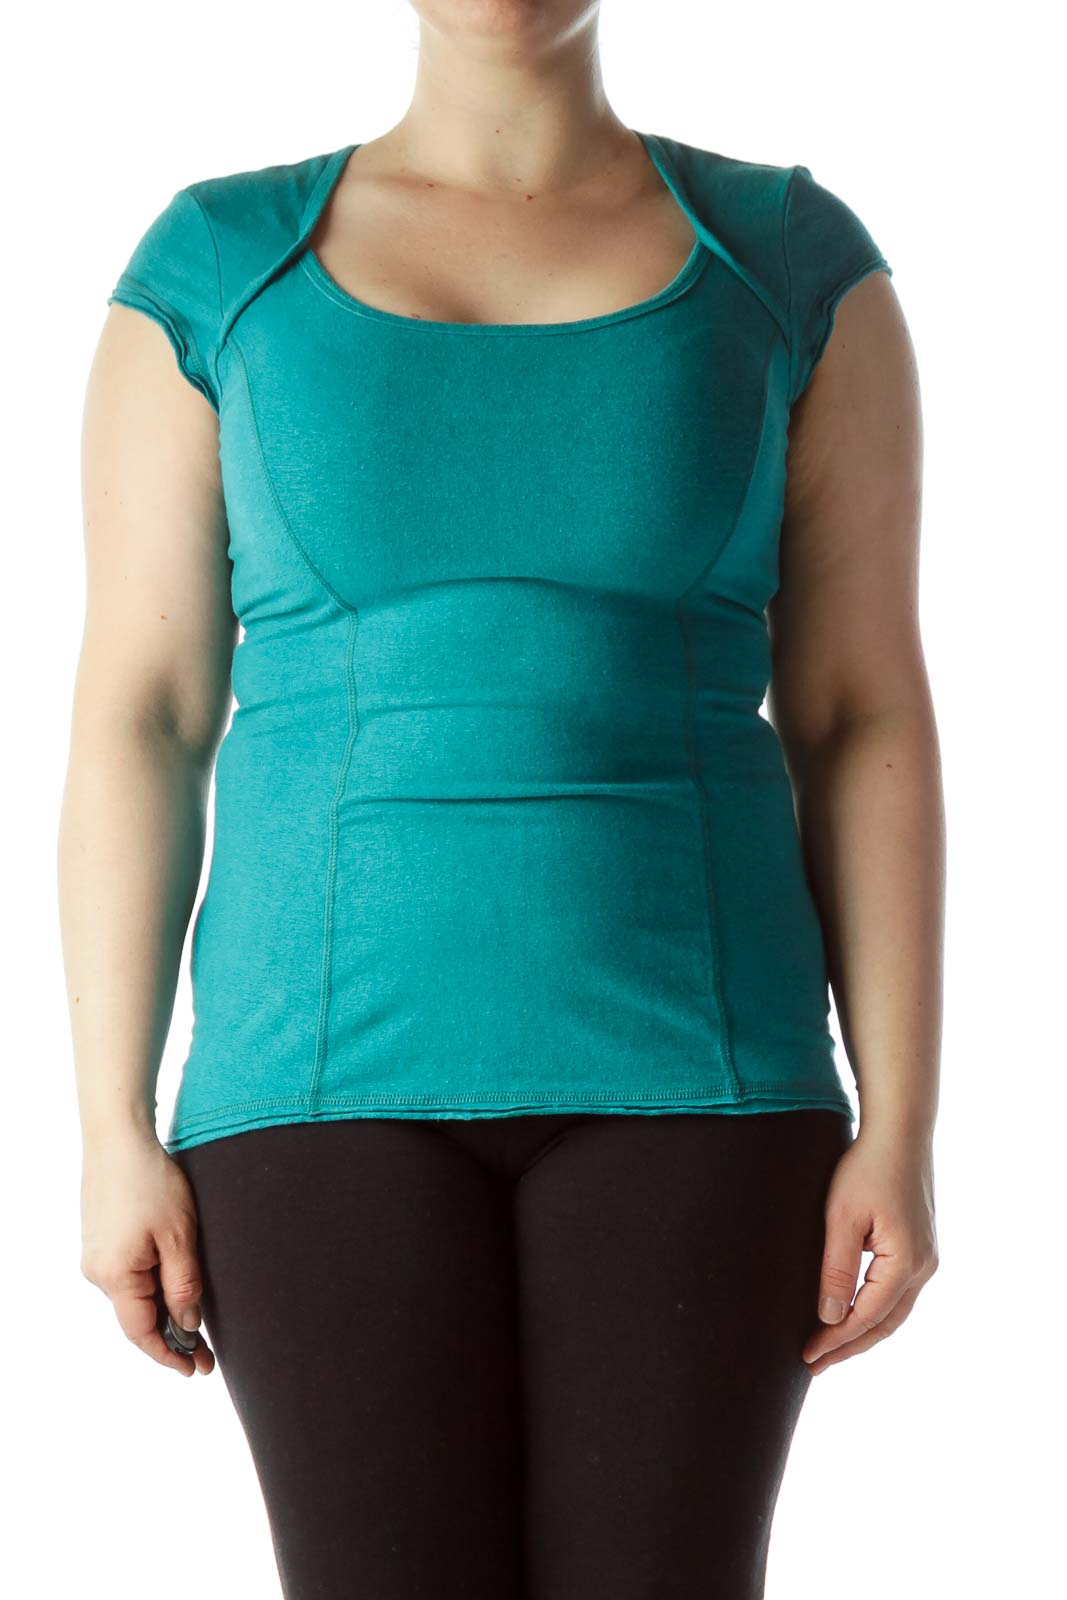 Teal Blue Short Sleeve Back Cut-Out Sports Top